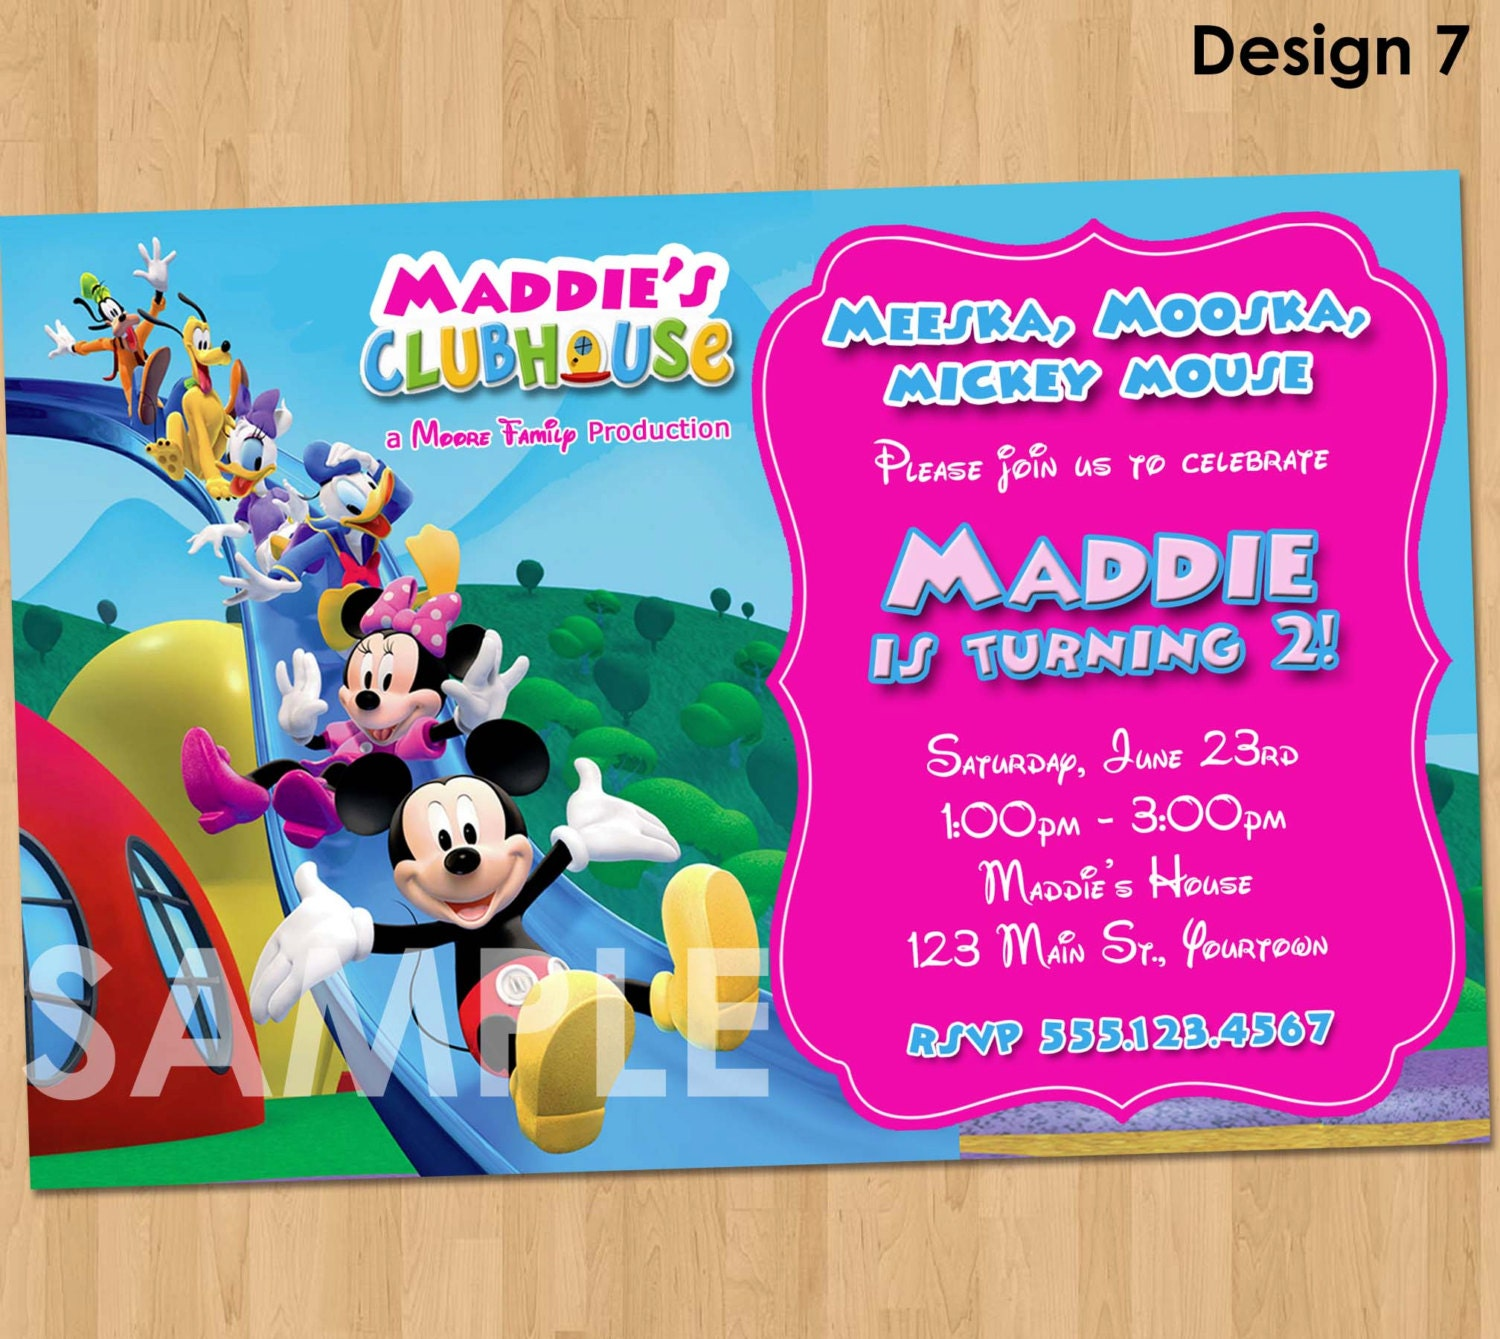 mickey mouse clubhouse party invitations printable - Etame.mibawa.co